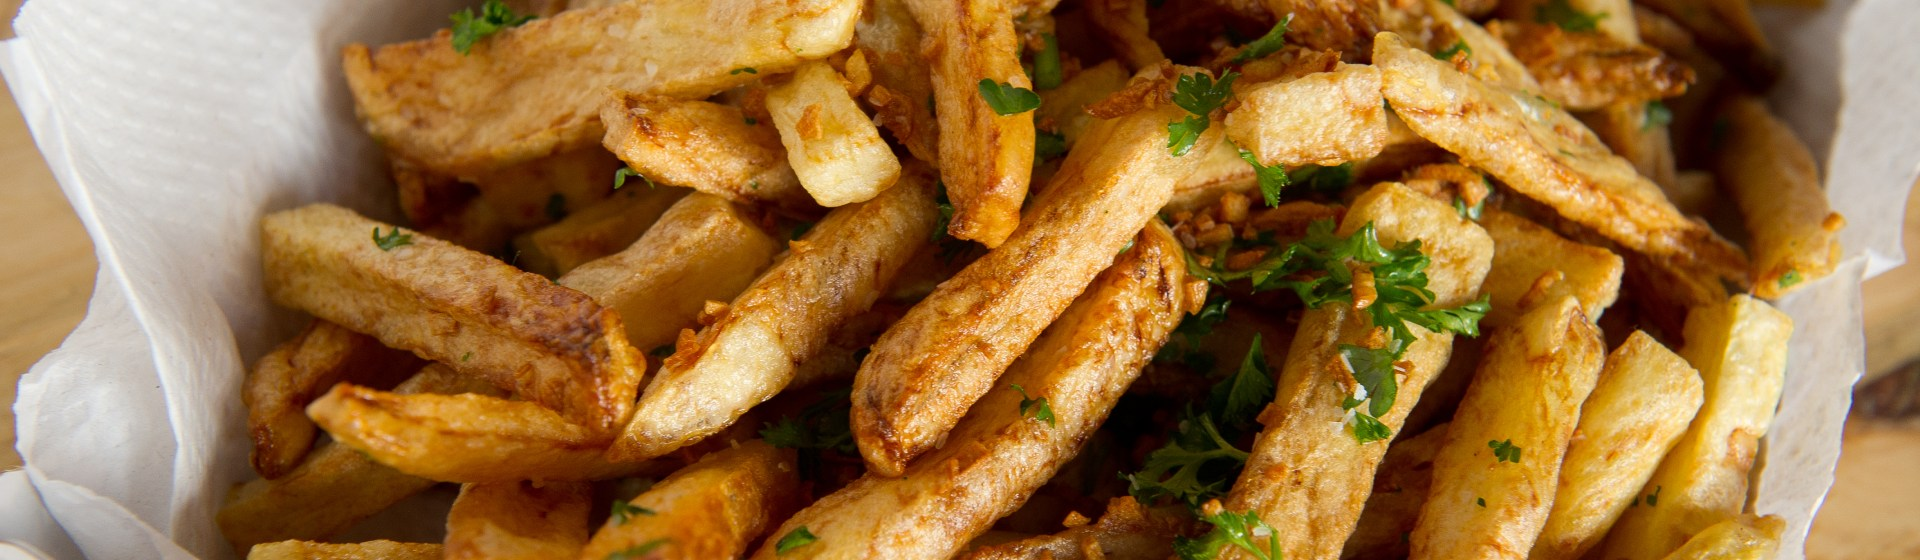 Ballpark-Style Garlic Fries Recipe - Food Republic